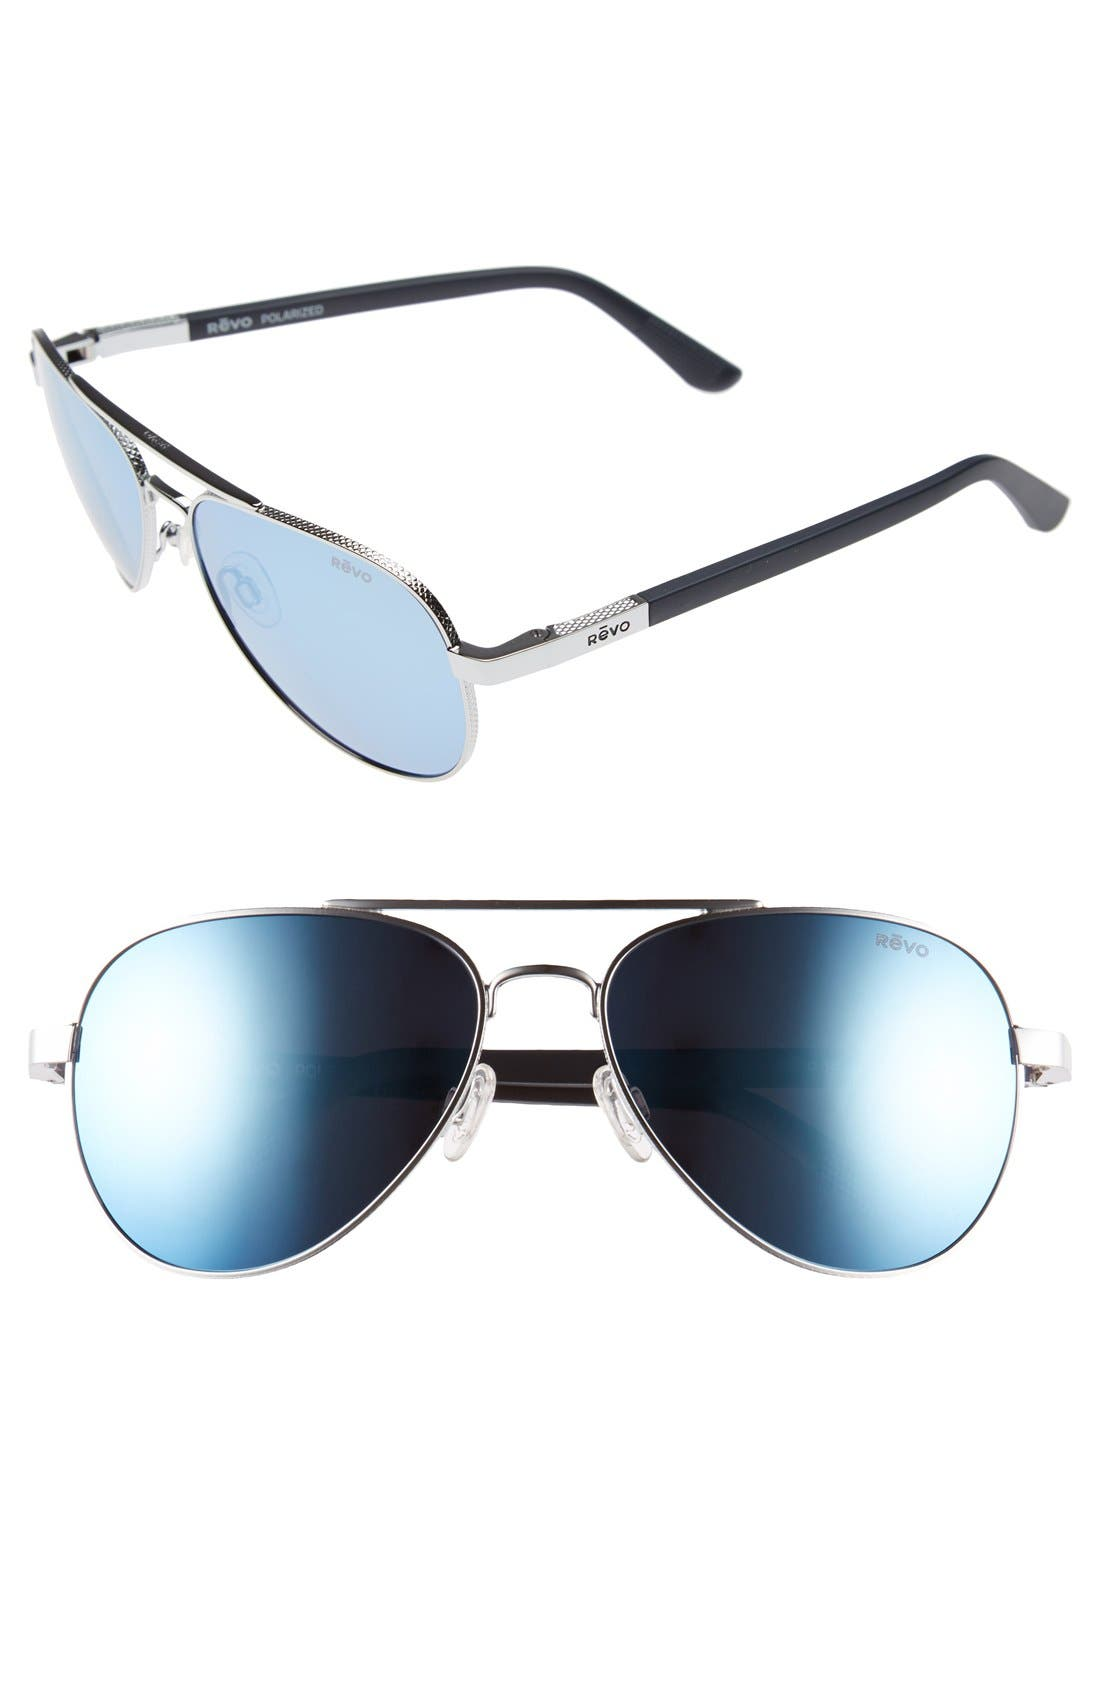 Main Image - Revo 'Raconteur' 58mm Polarized Aviator Sunglasses